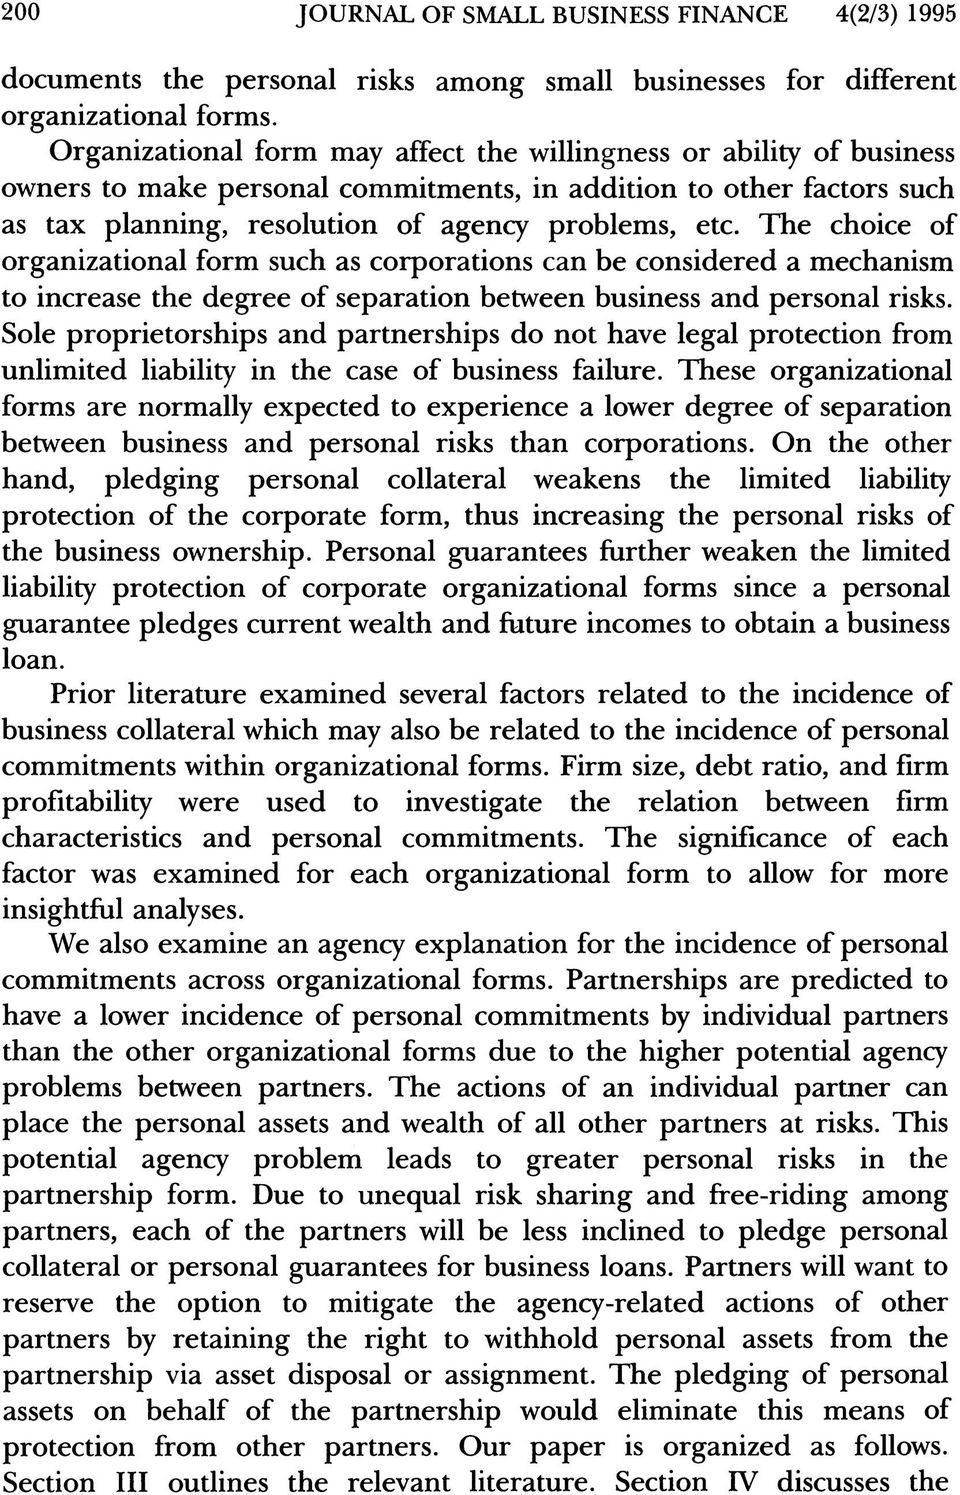 The choice of organizational form such as corporations can be considered a mechanism to increase the degree of separation between business and personal risks.